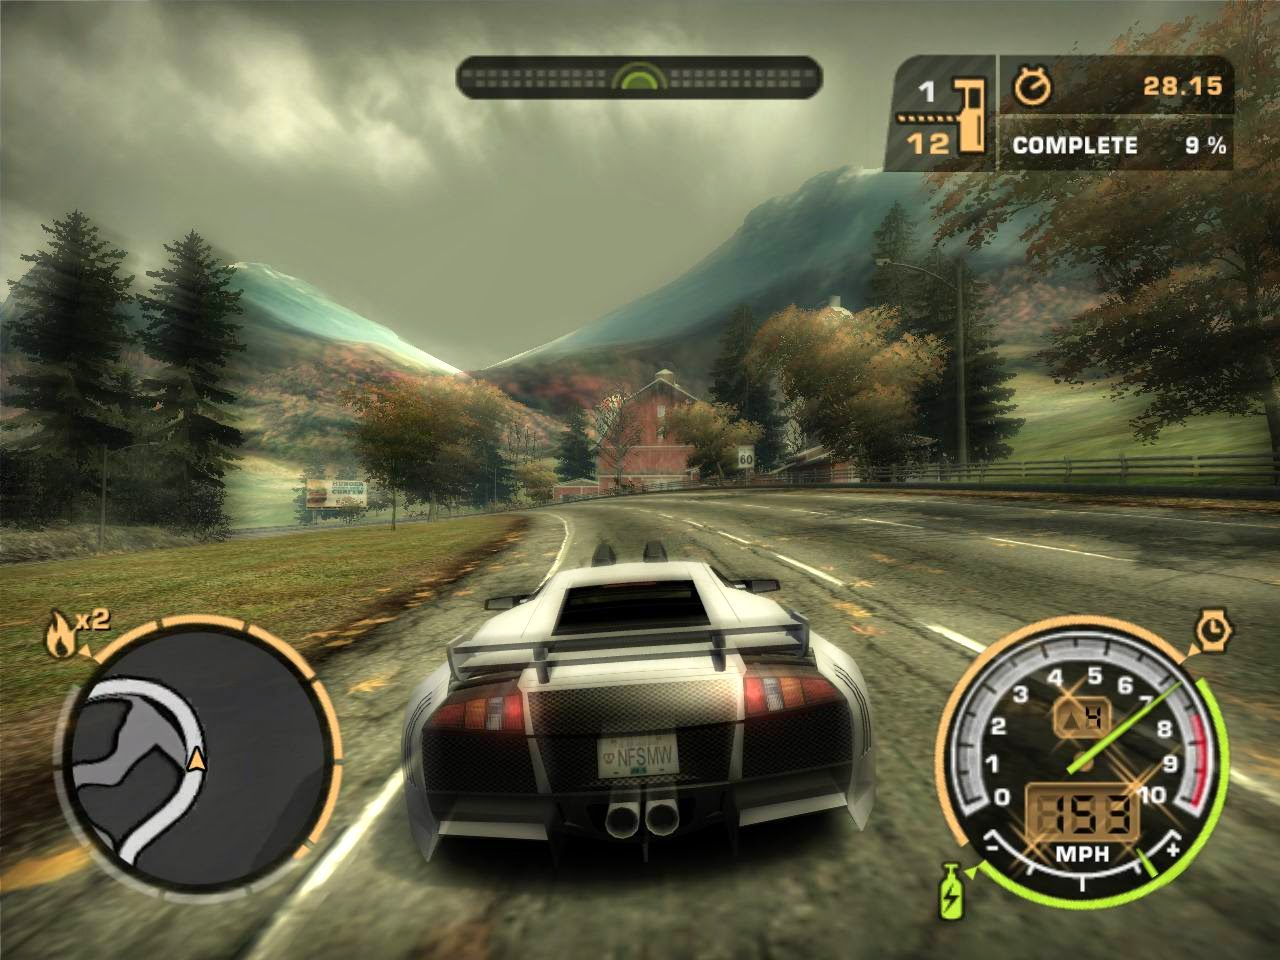 شرح تحميل وتتبيث لعبة  Need For Speed Most Wanted  مضغوطة بحجم 354 MB